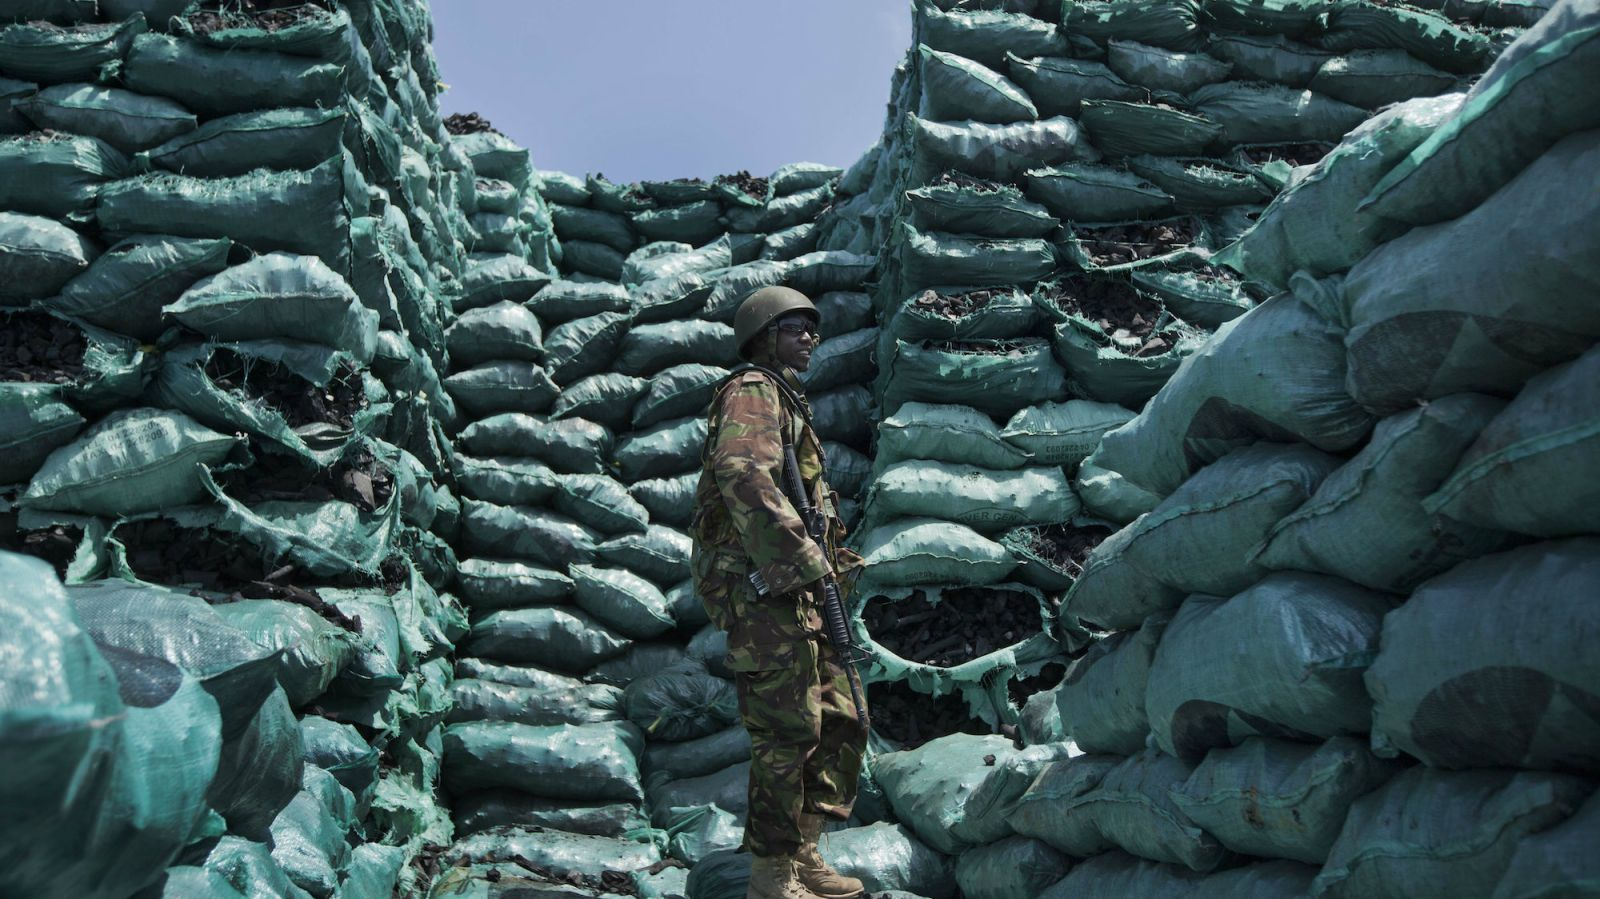 Is the Somalia, Kenya trade, on a leveled playing field?